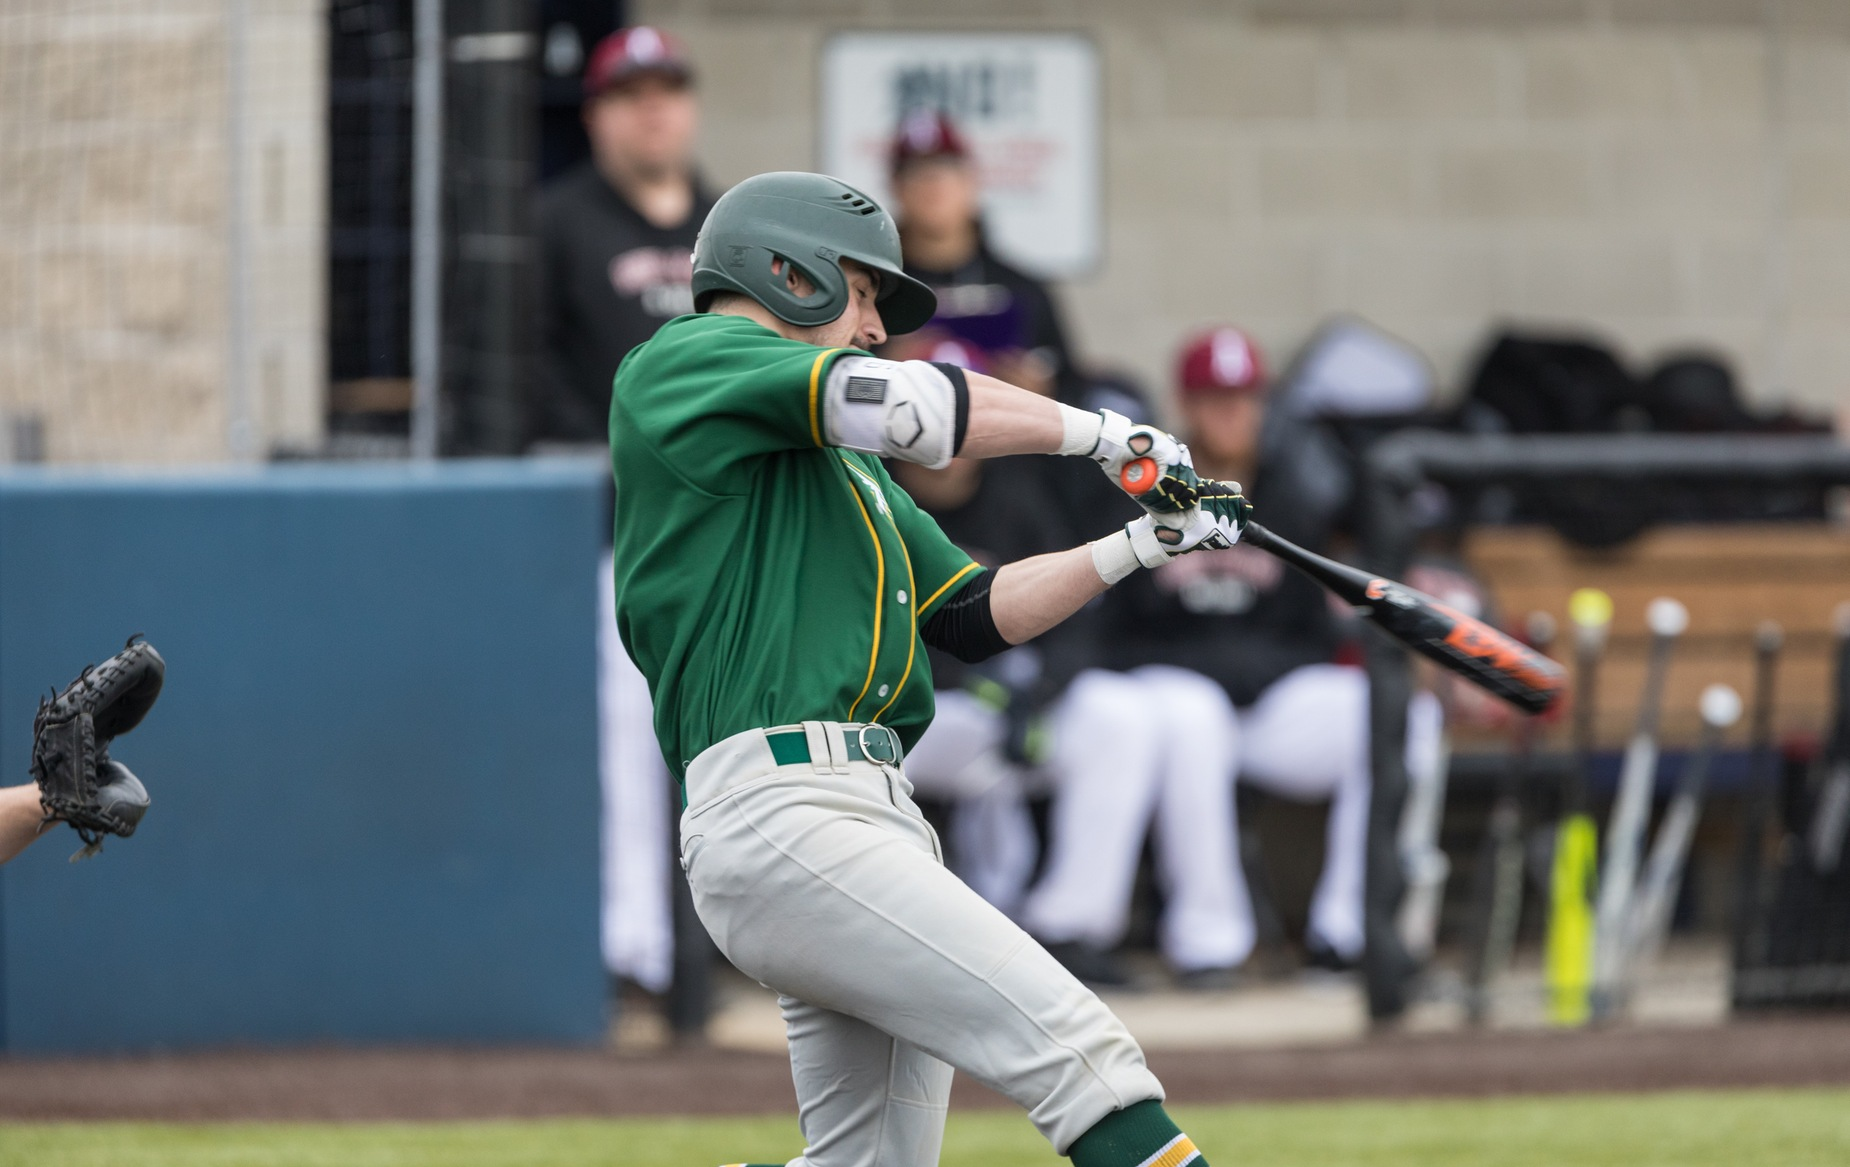 Falcons Edged By Engineers, 6-4 (11 Inn)